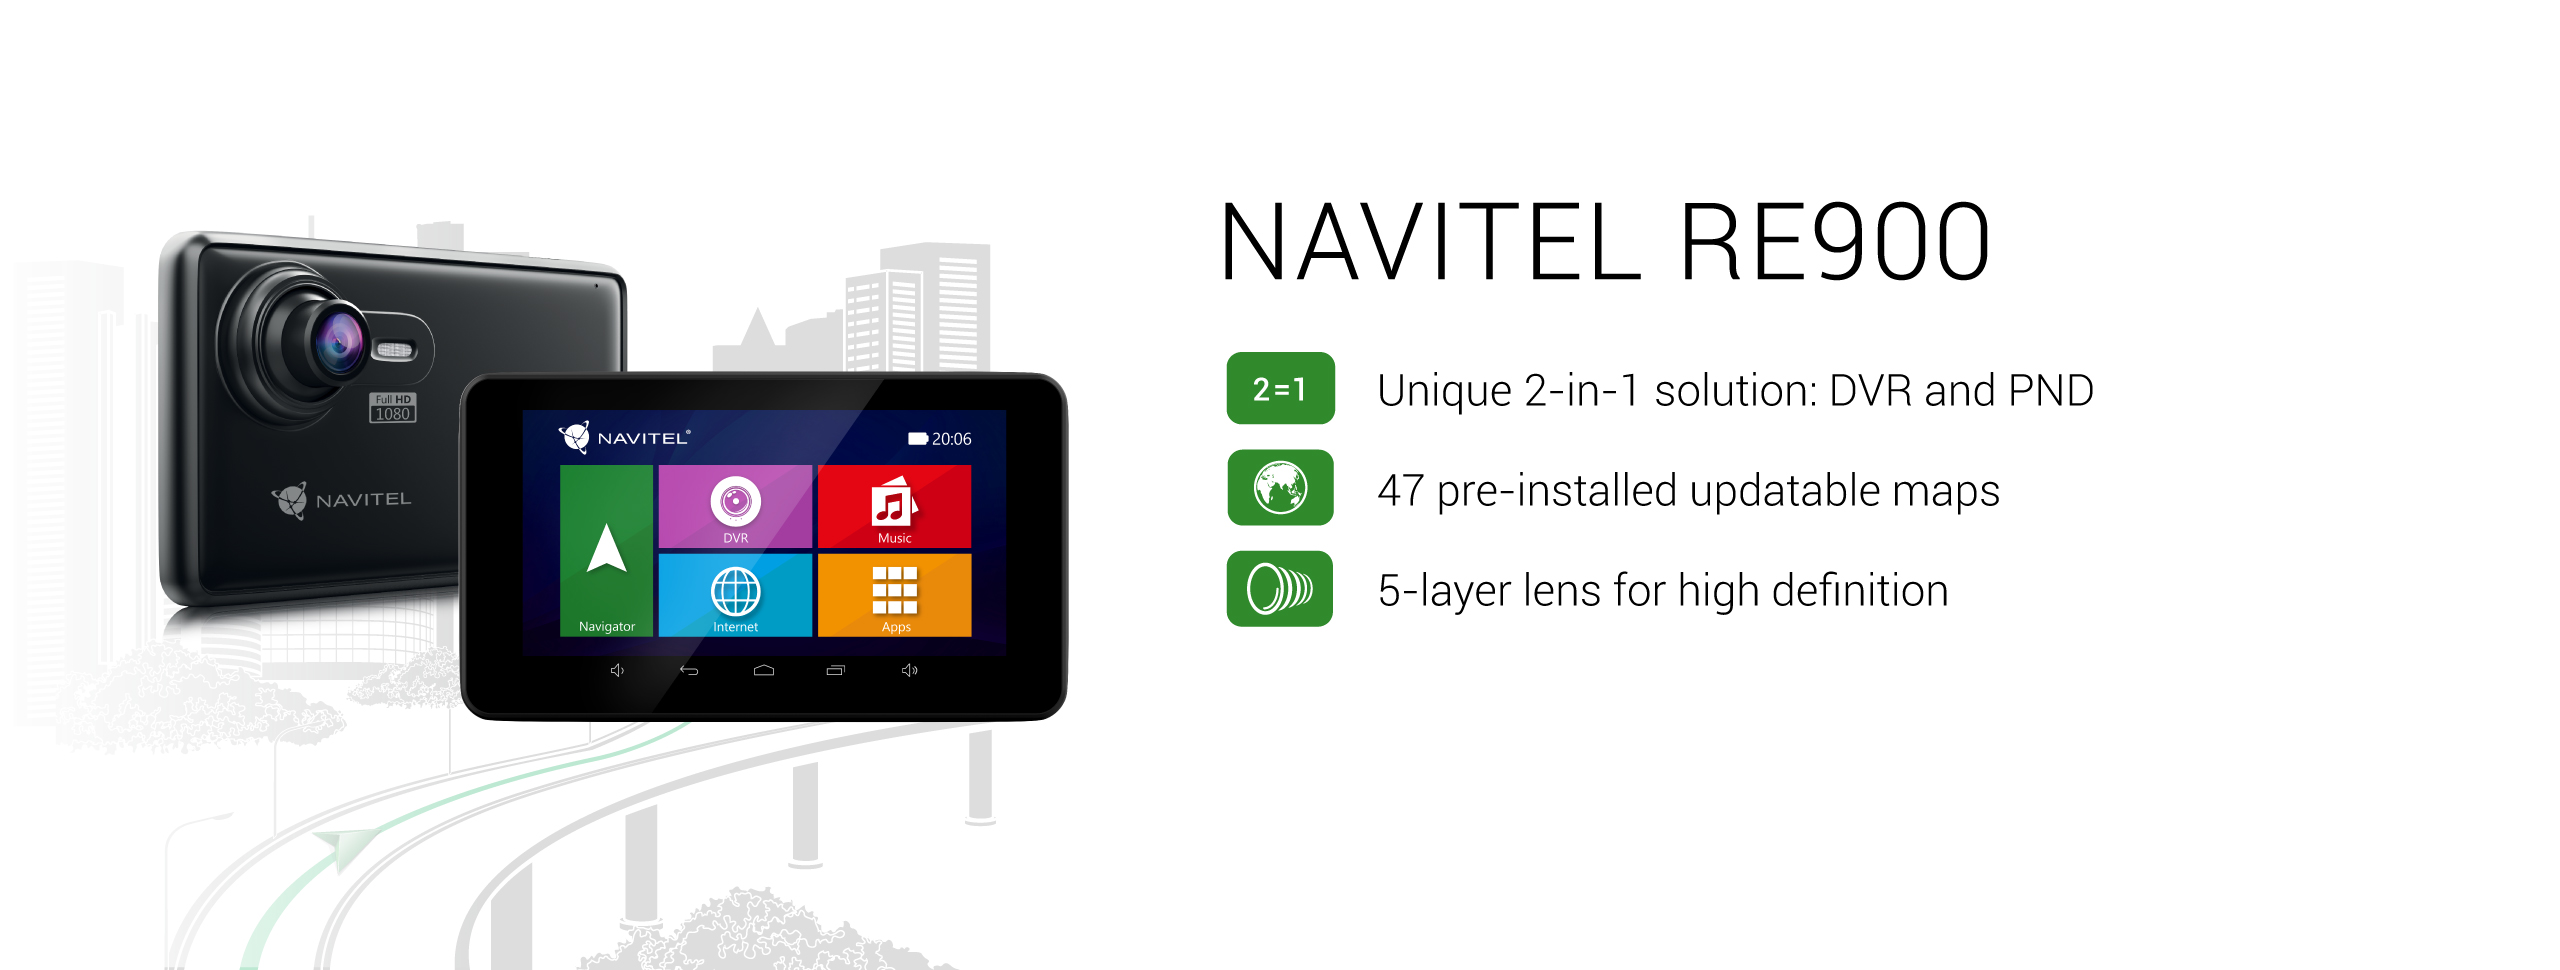 Navigation DVR NAVITEL RE900 FULL HD Device